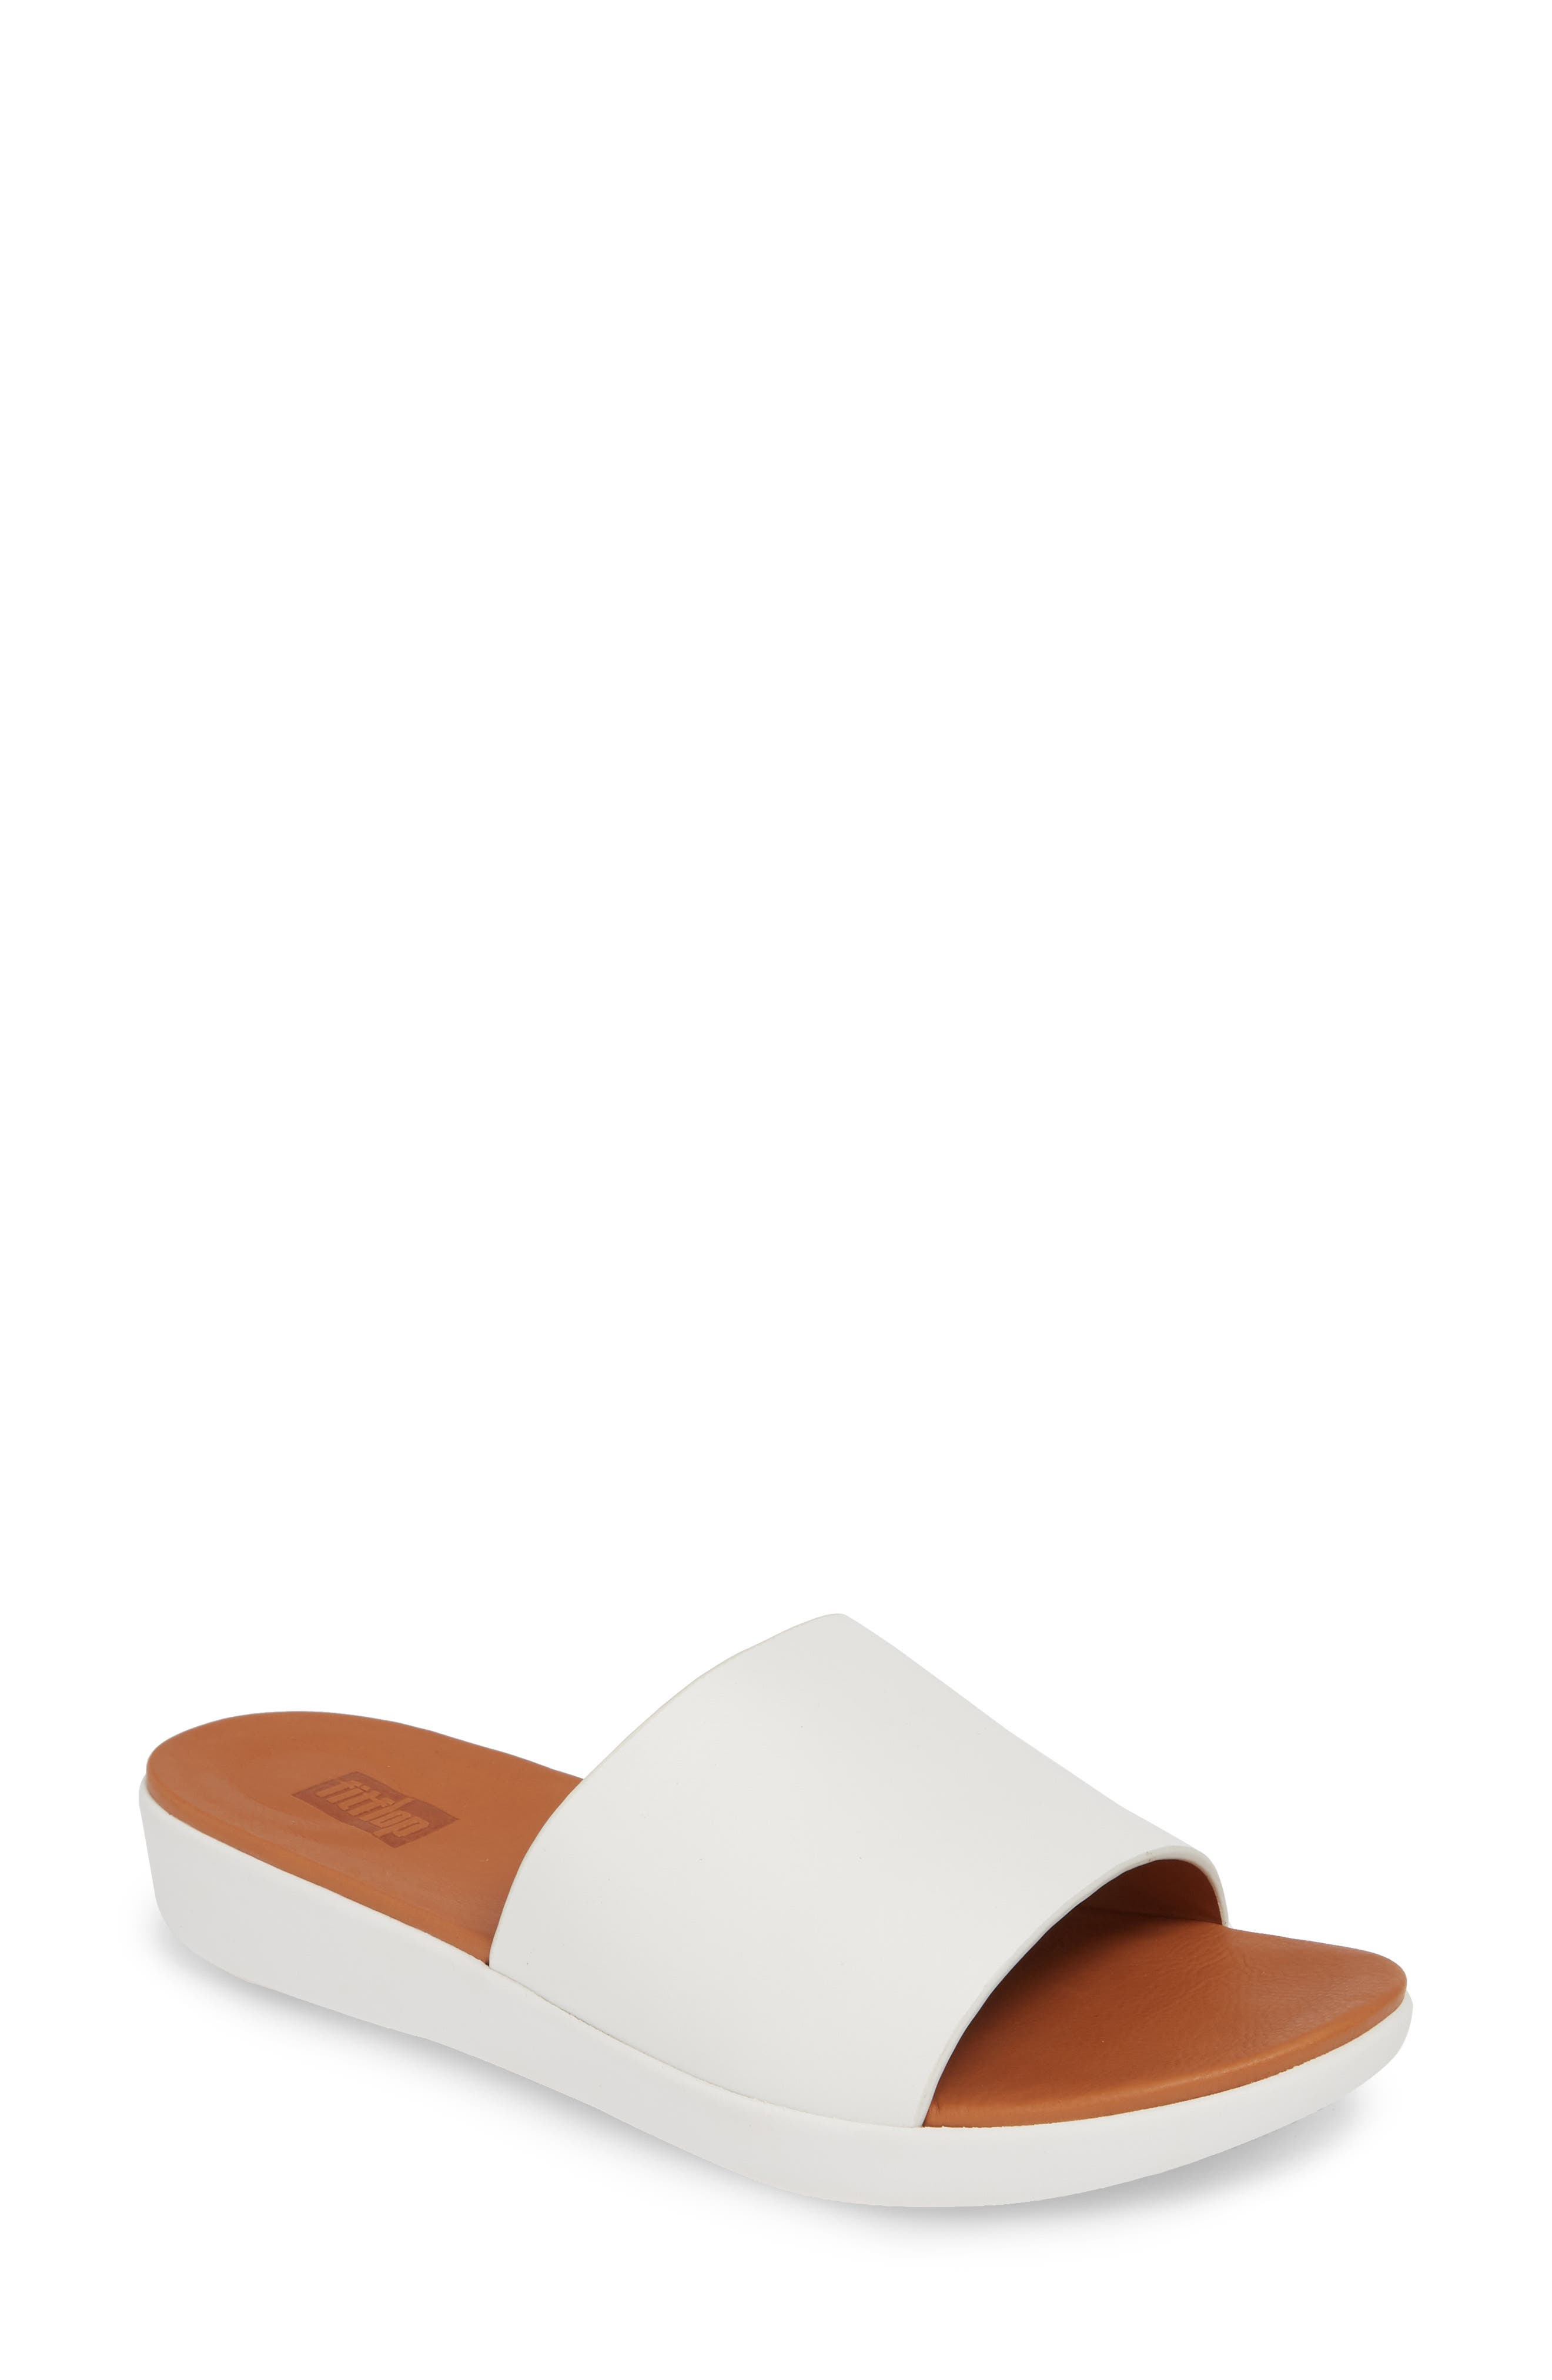 FITFLOP Sola Sandal, Main, color, URBAN WHITE LEATHER